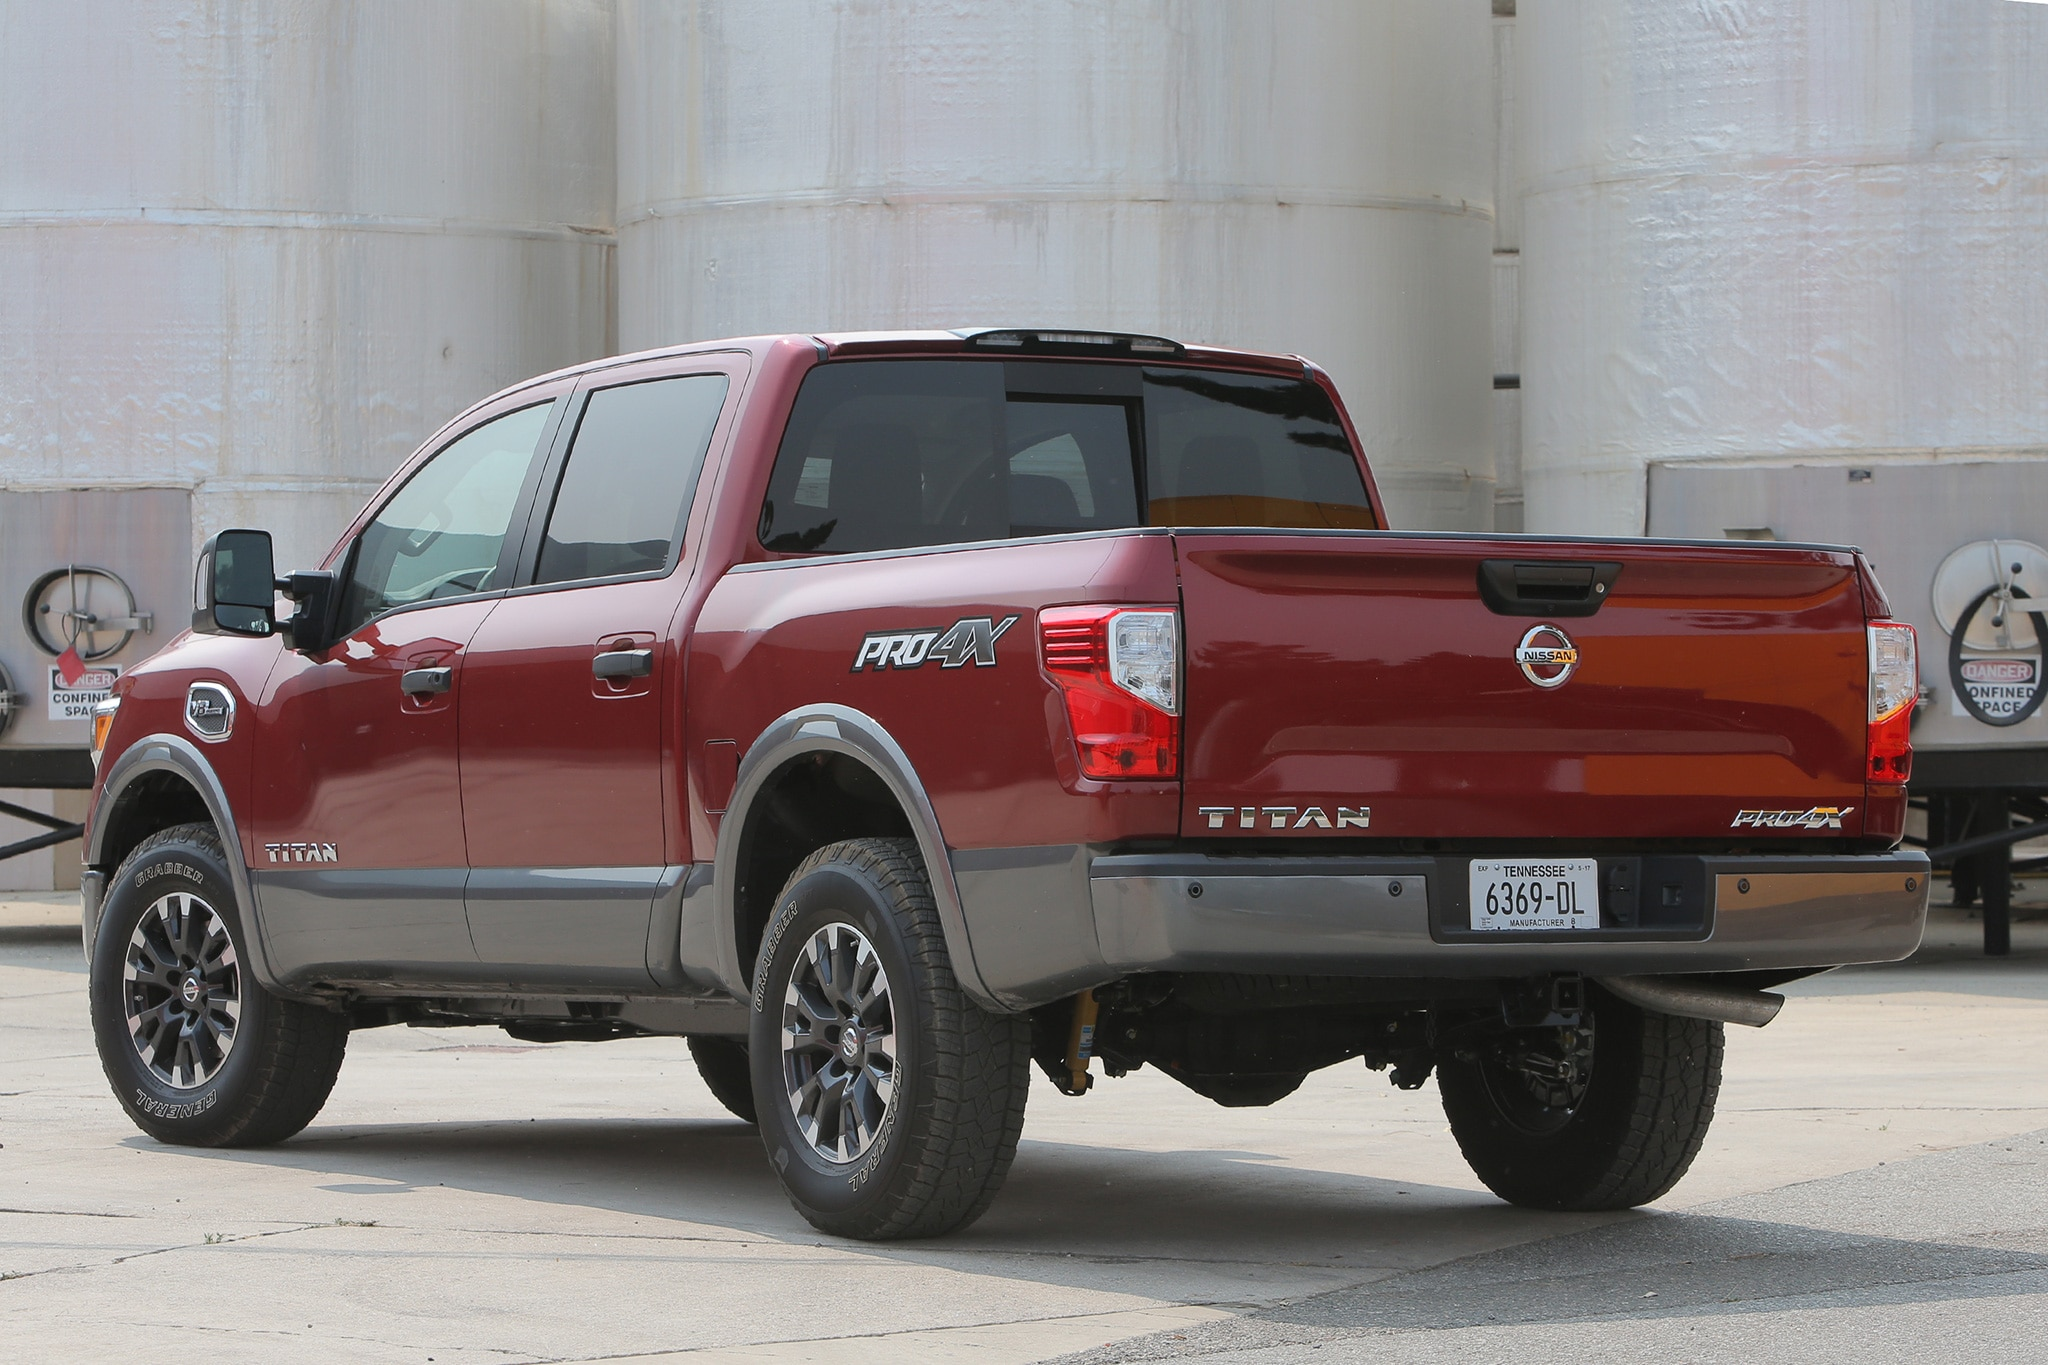 2017 Nissan Titan V-8 Crew Cab First Drive Road Test and